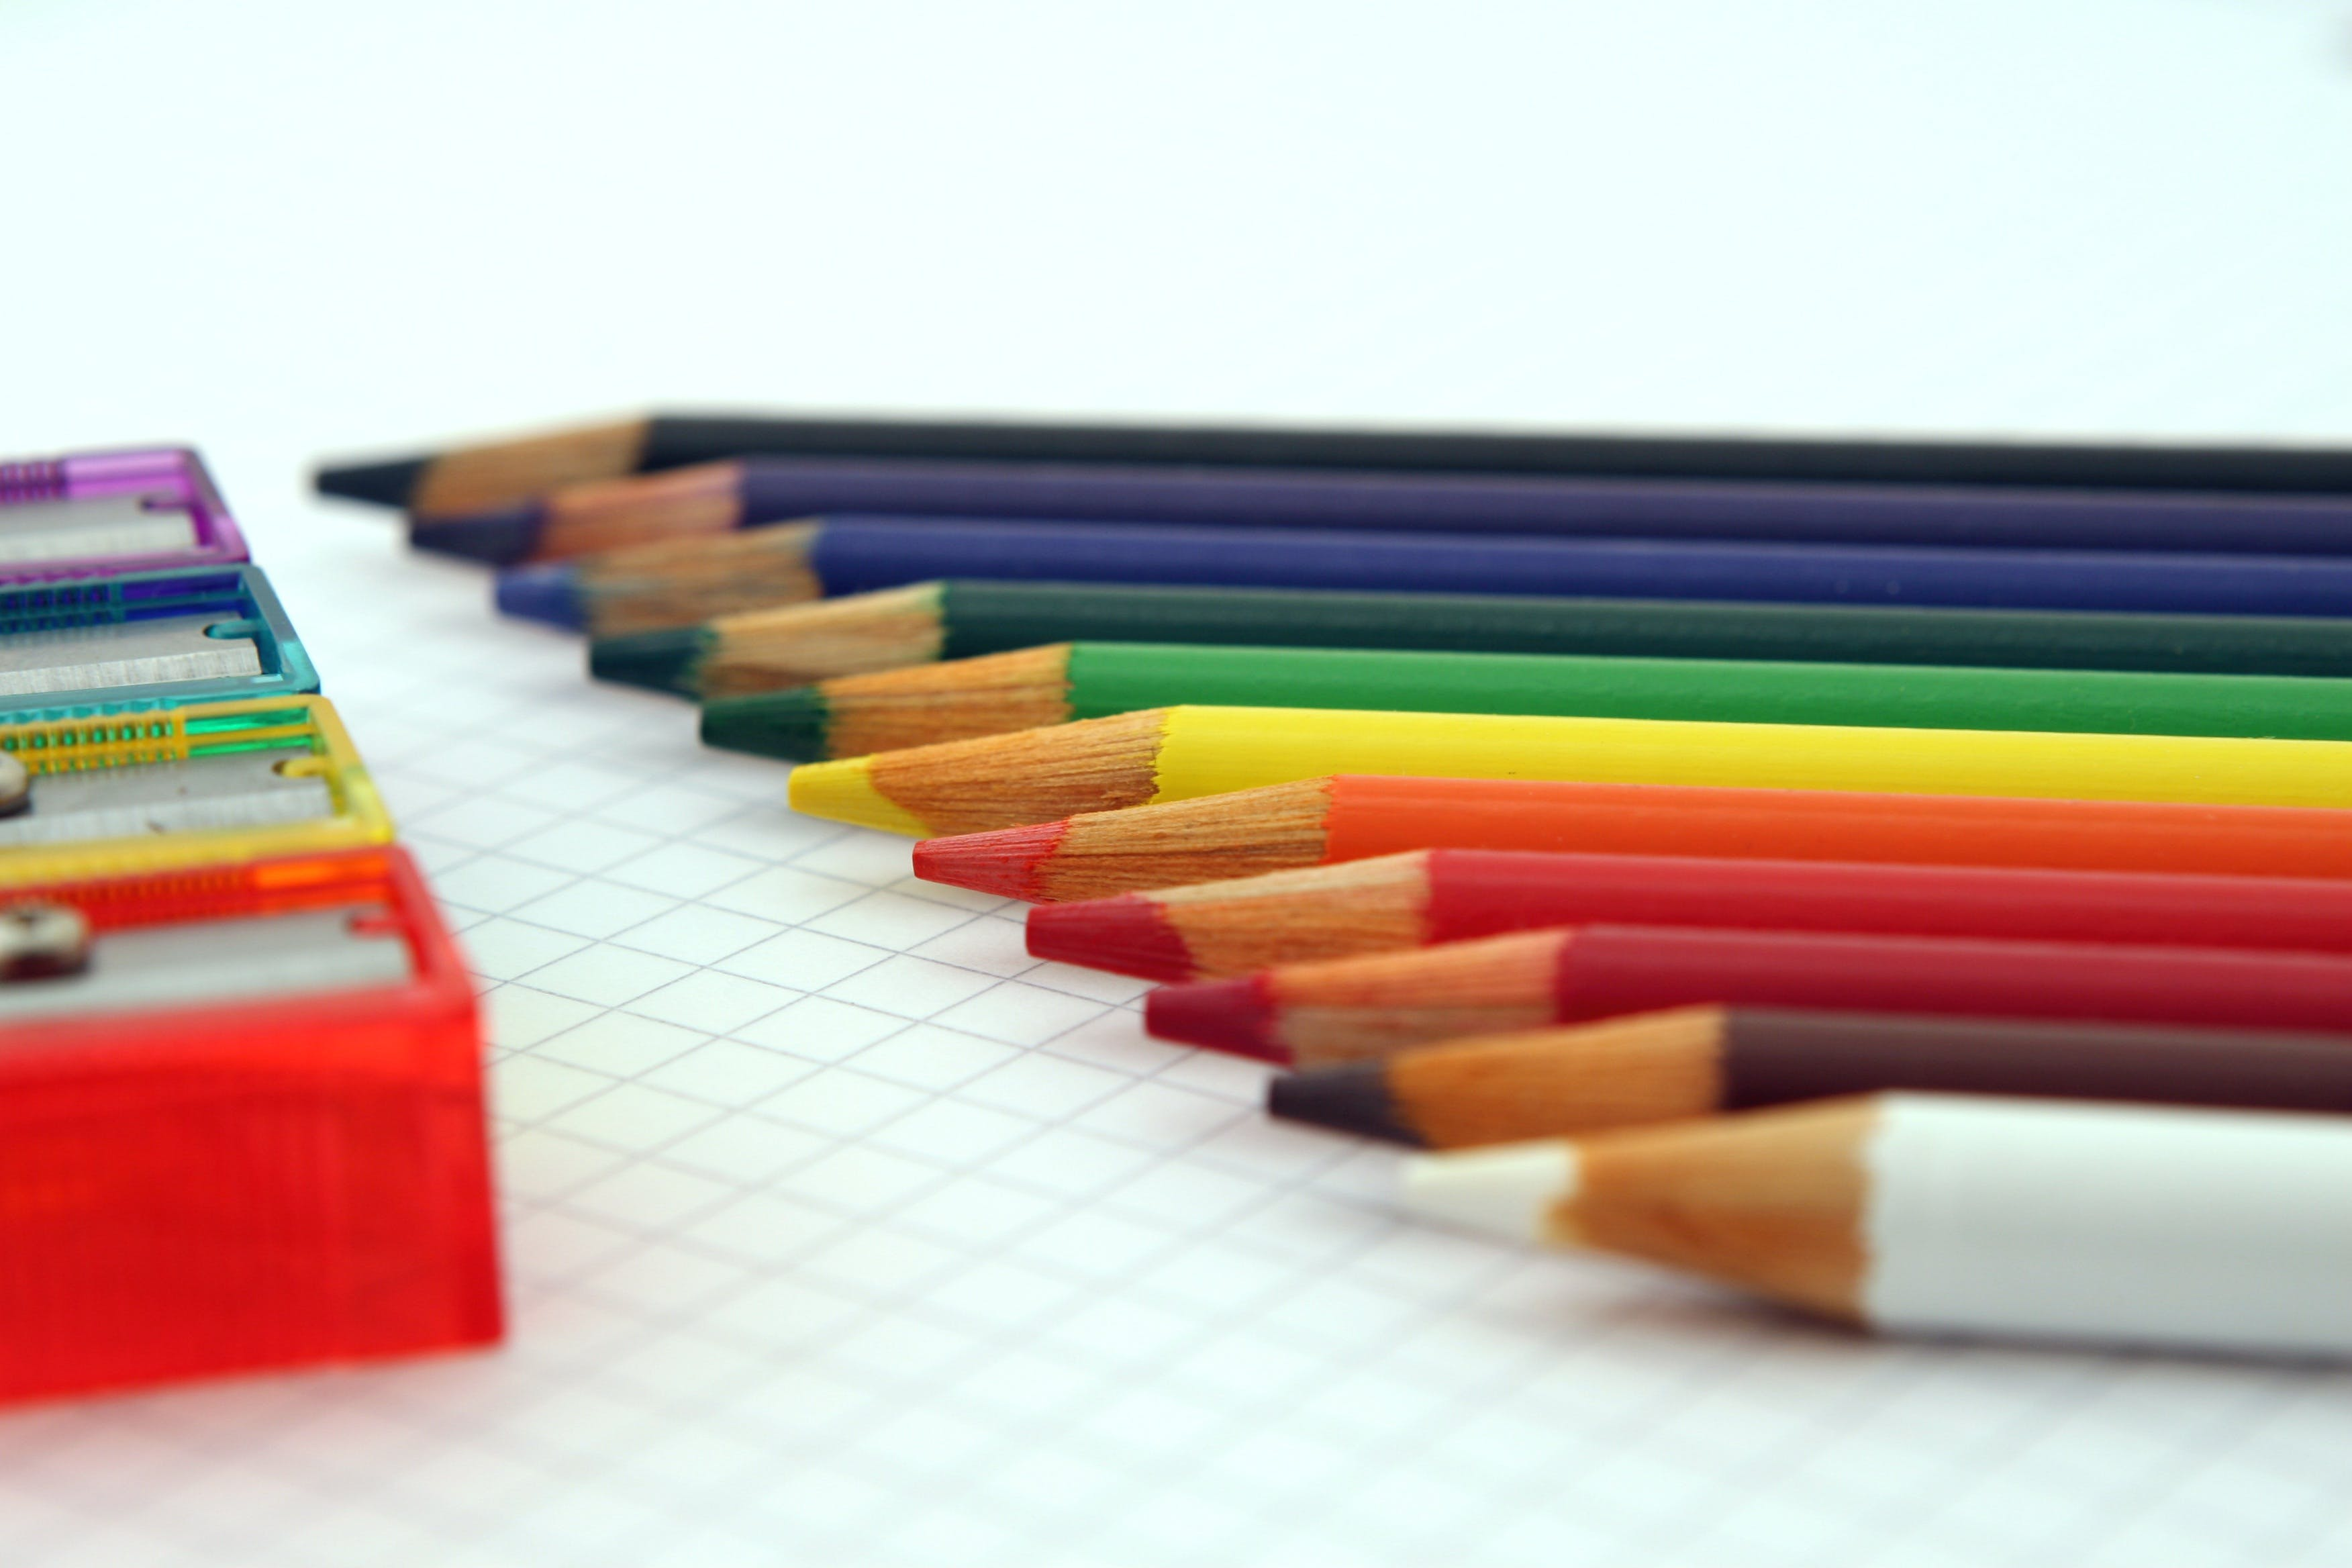 Close Up Photography of Coloring Pencils